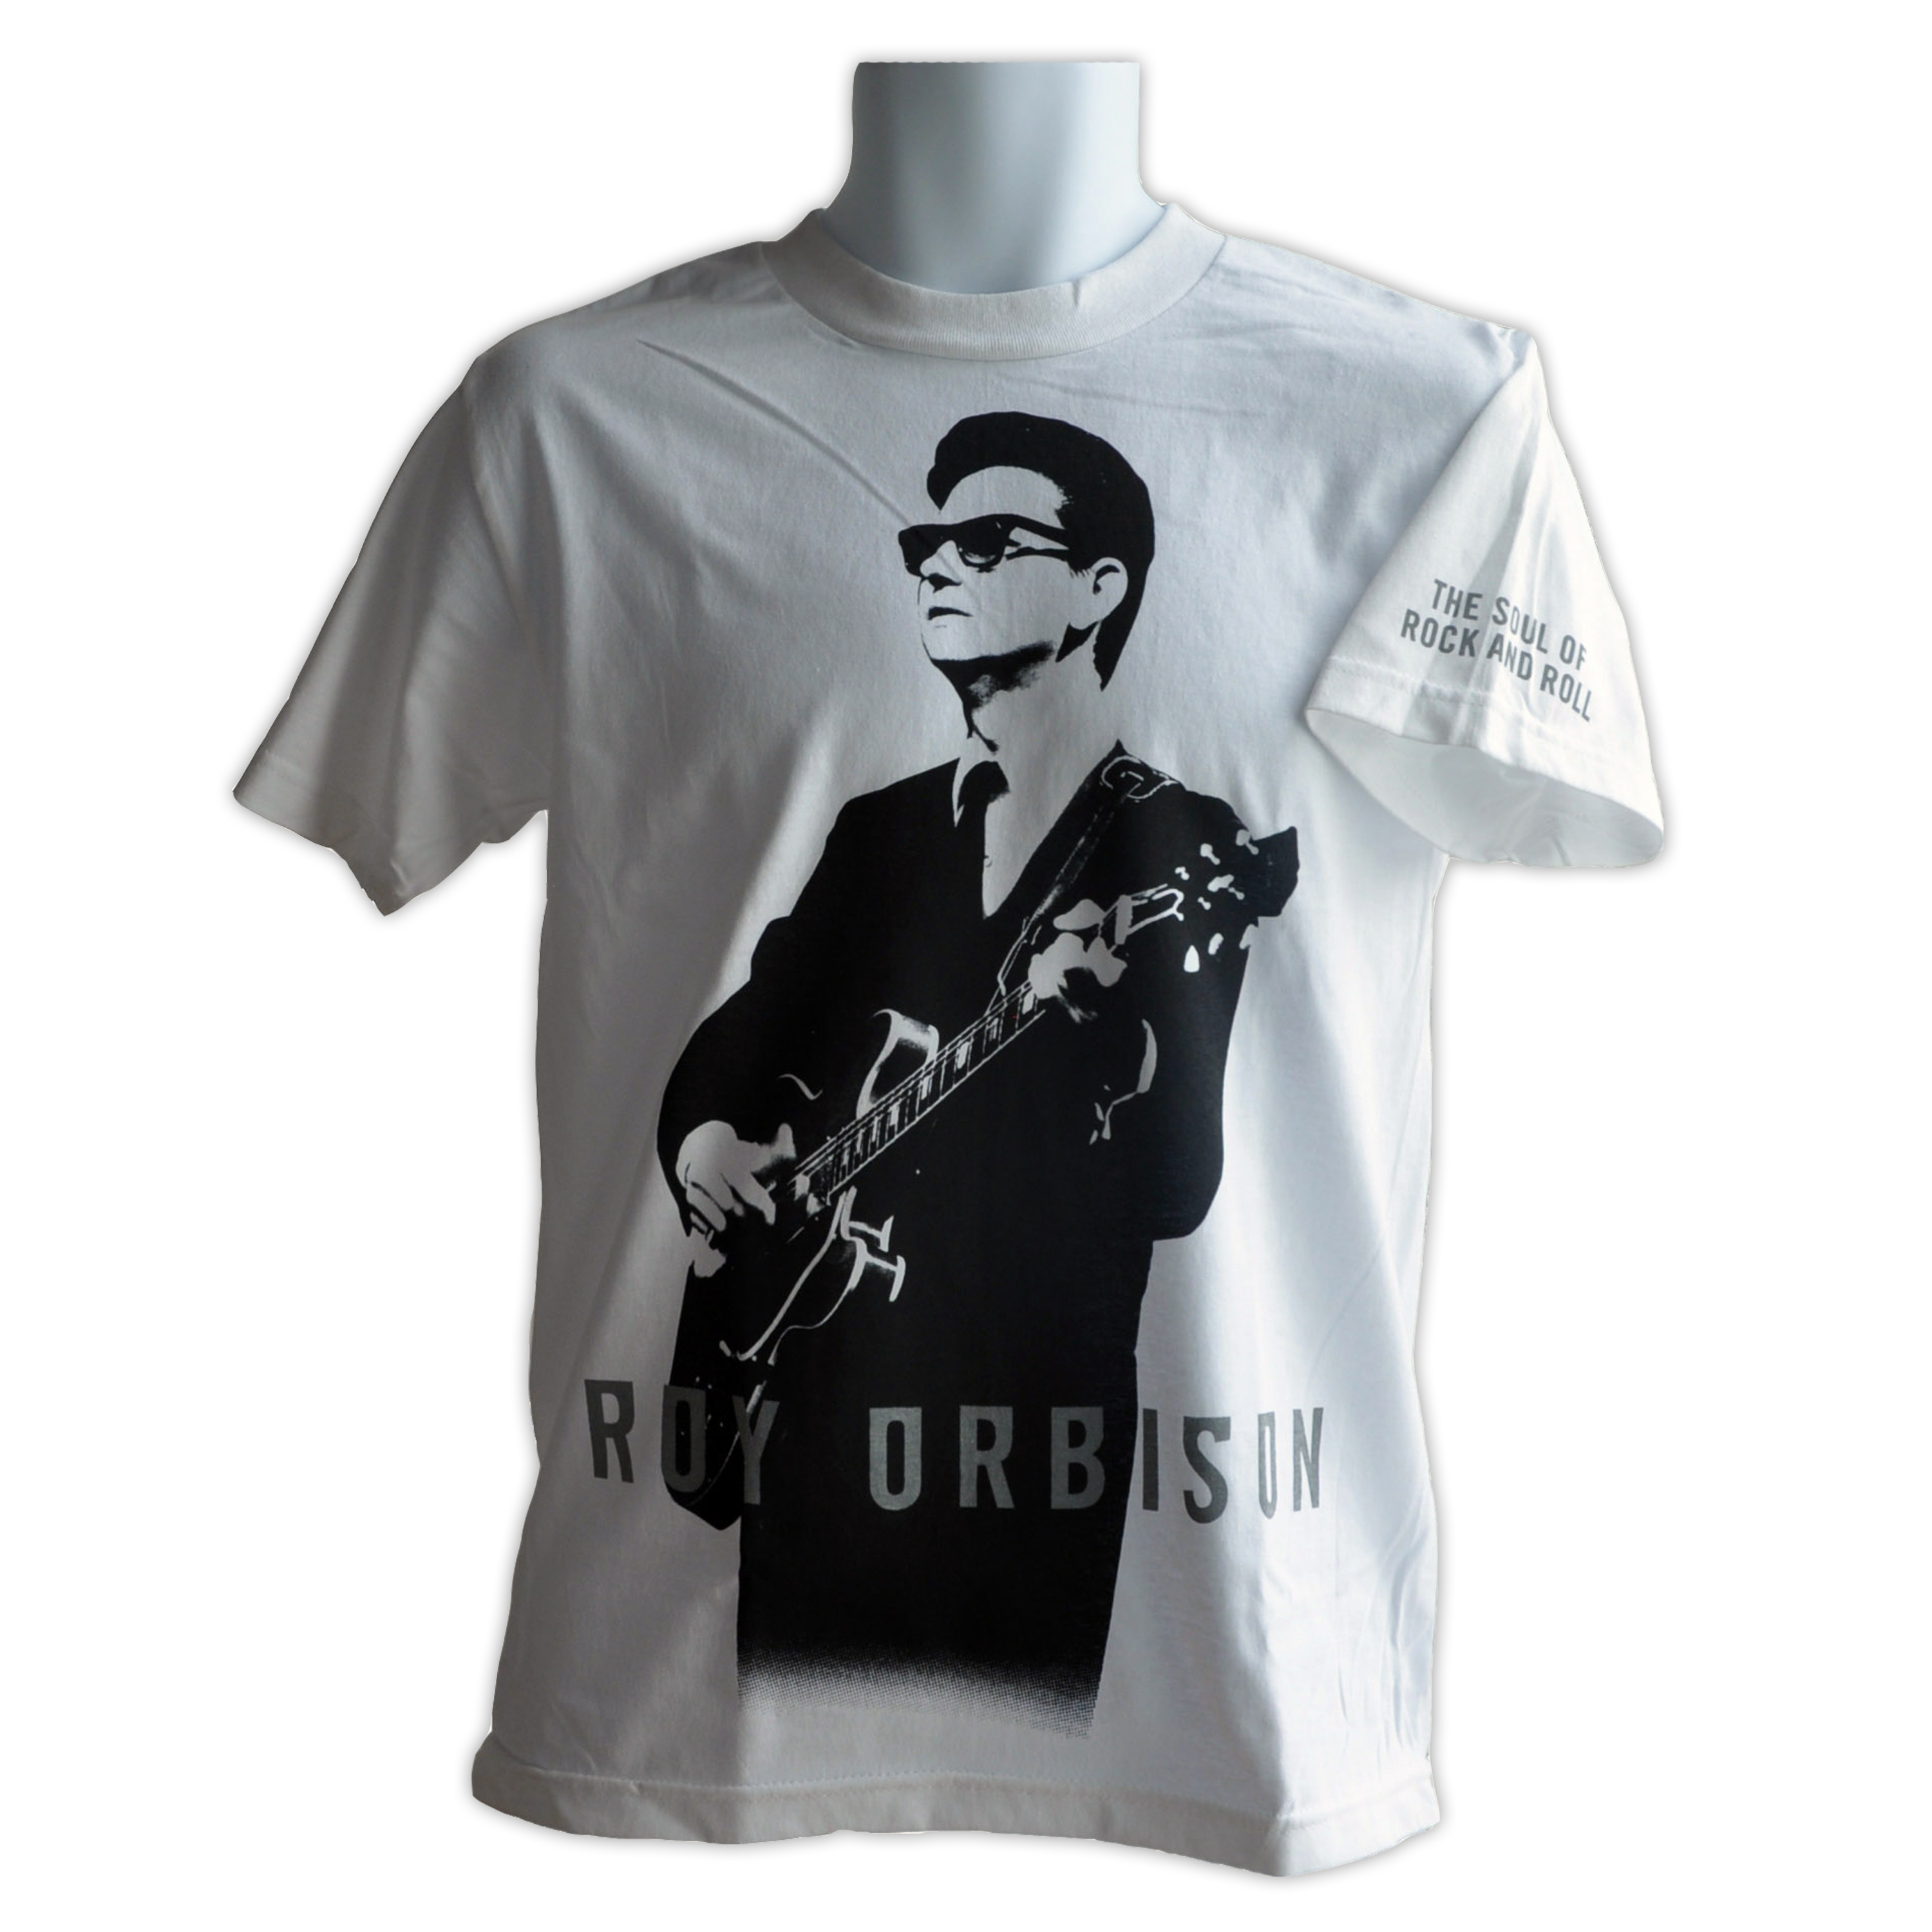 The soul of rock roll t shirt roy orbison online store for T shirts store online